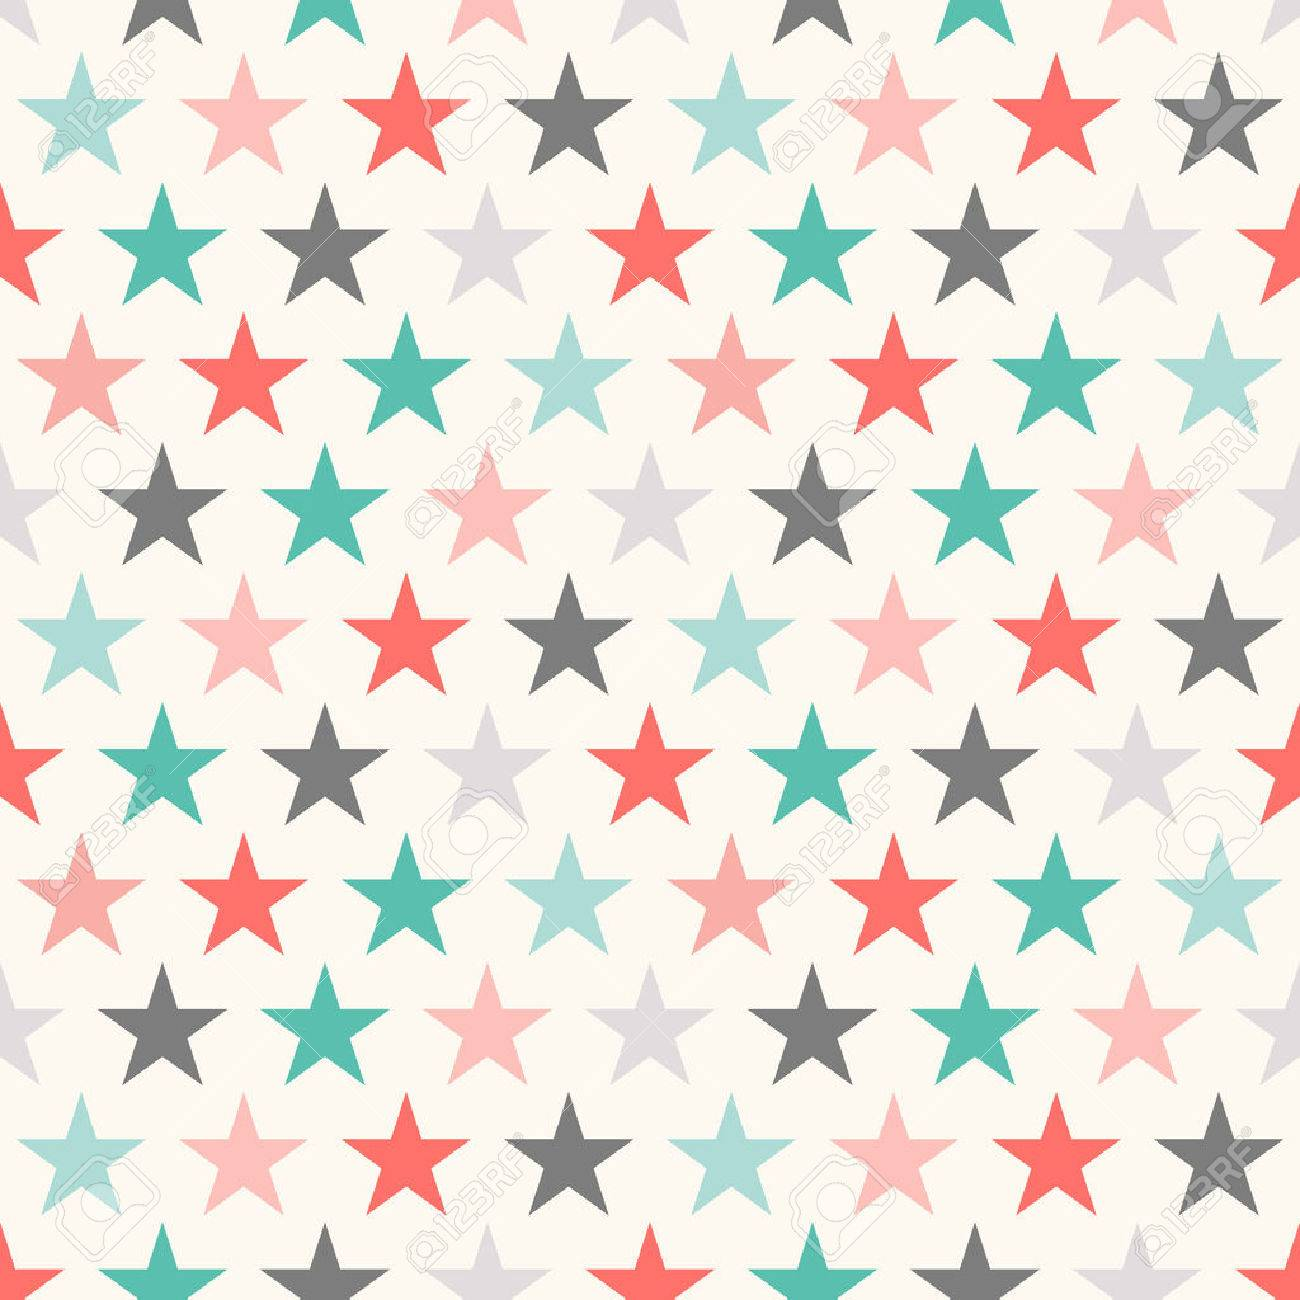 Retro Colorful Star Seamless Pattern Vector Illustration For Holiday Kid Background Bright Wallpaper